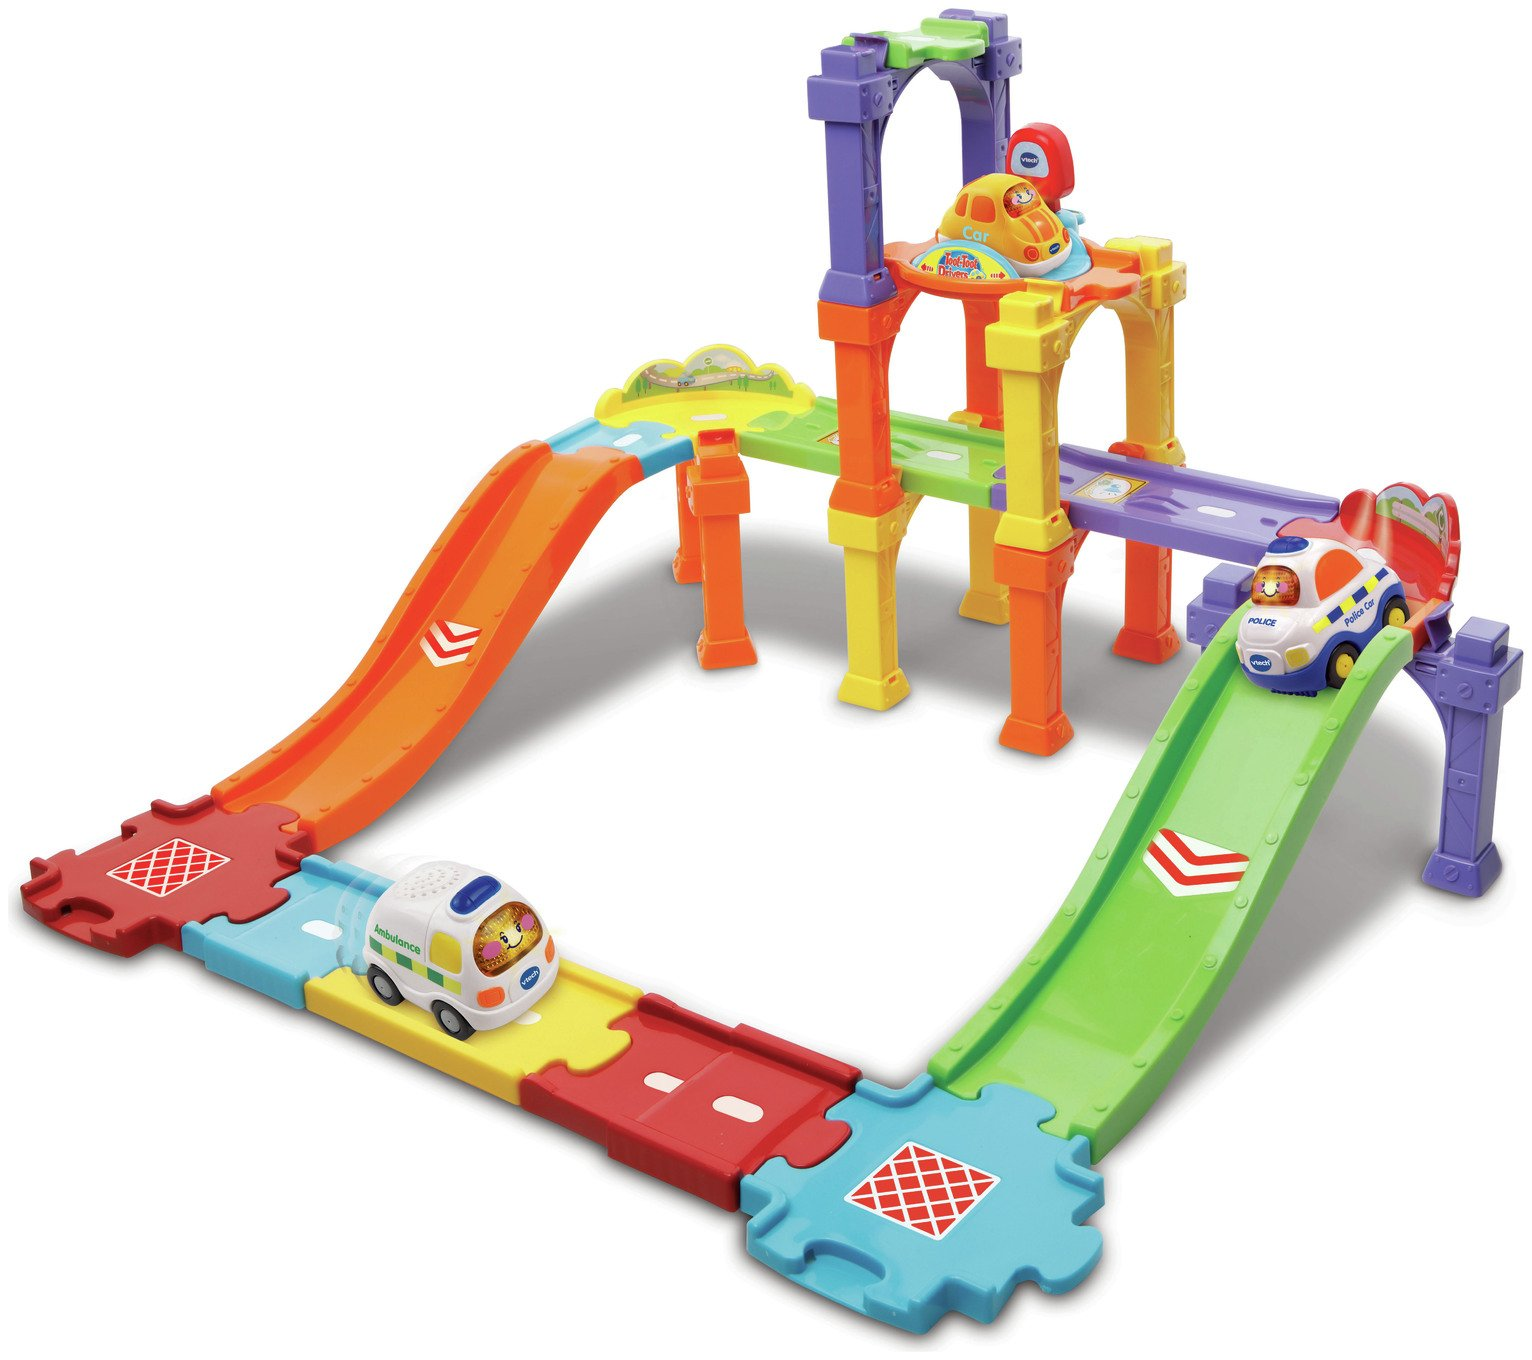 VTech Toot Toot Ultimate Track Set - 23 Pieces